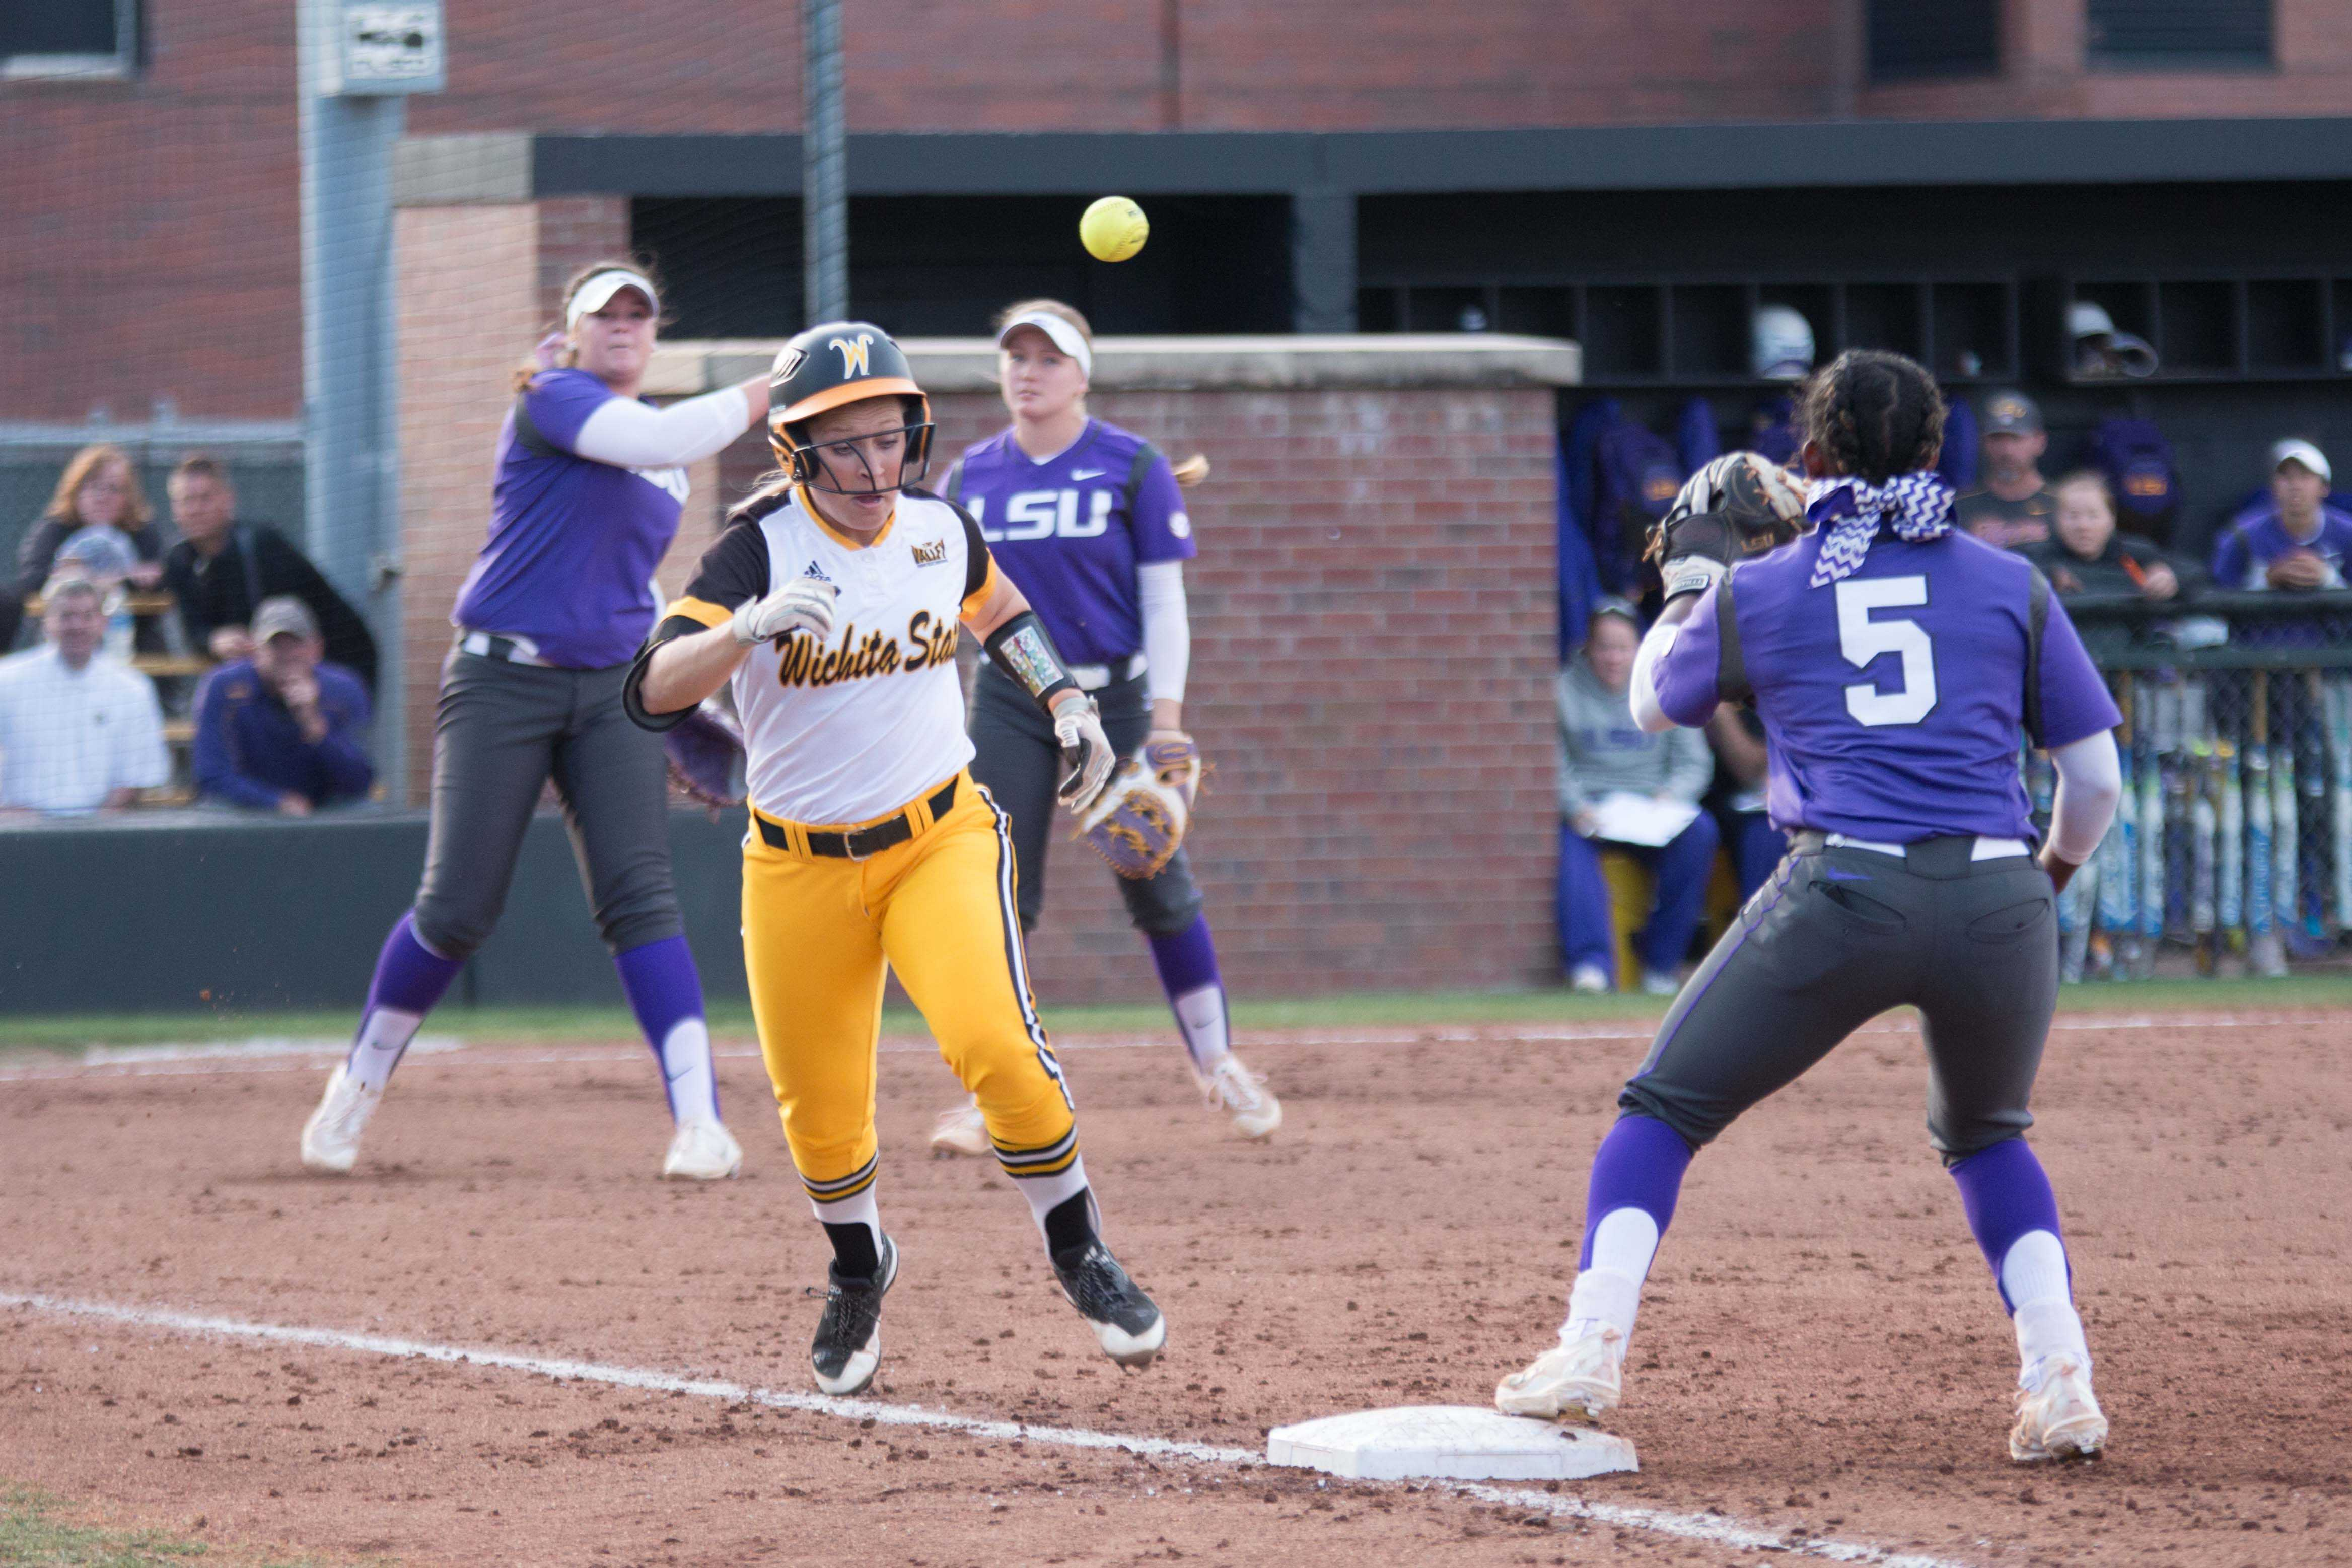 Junior McKenzie Adams races to first base during the game against Louisiana State.